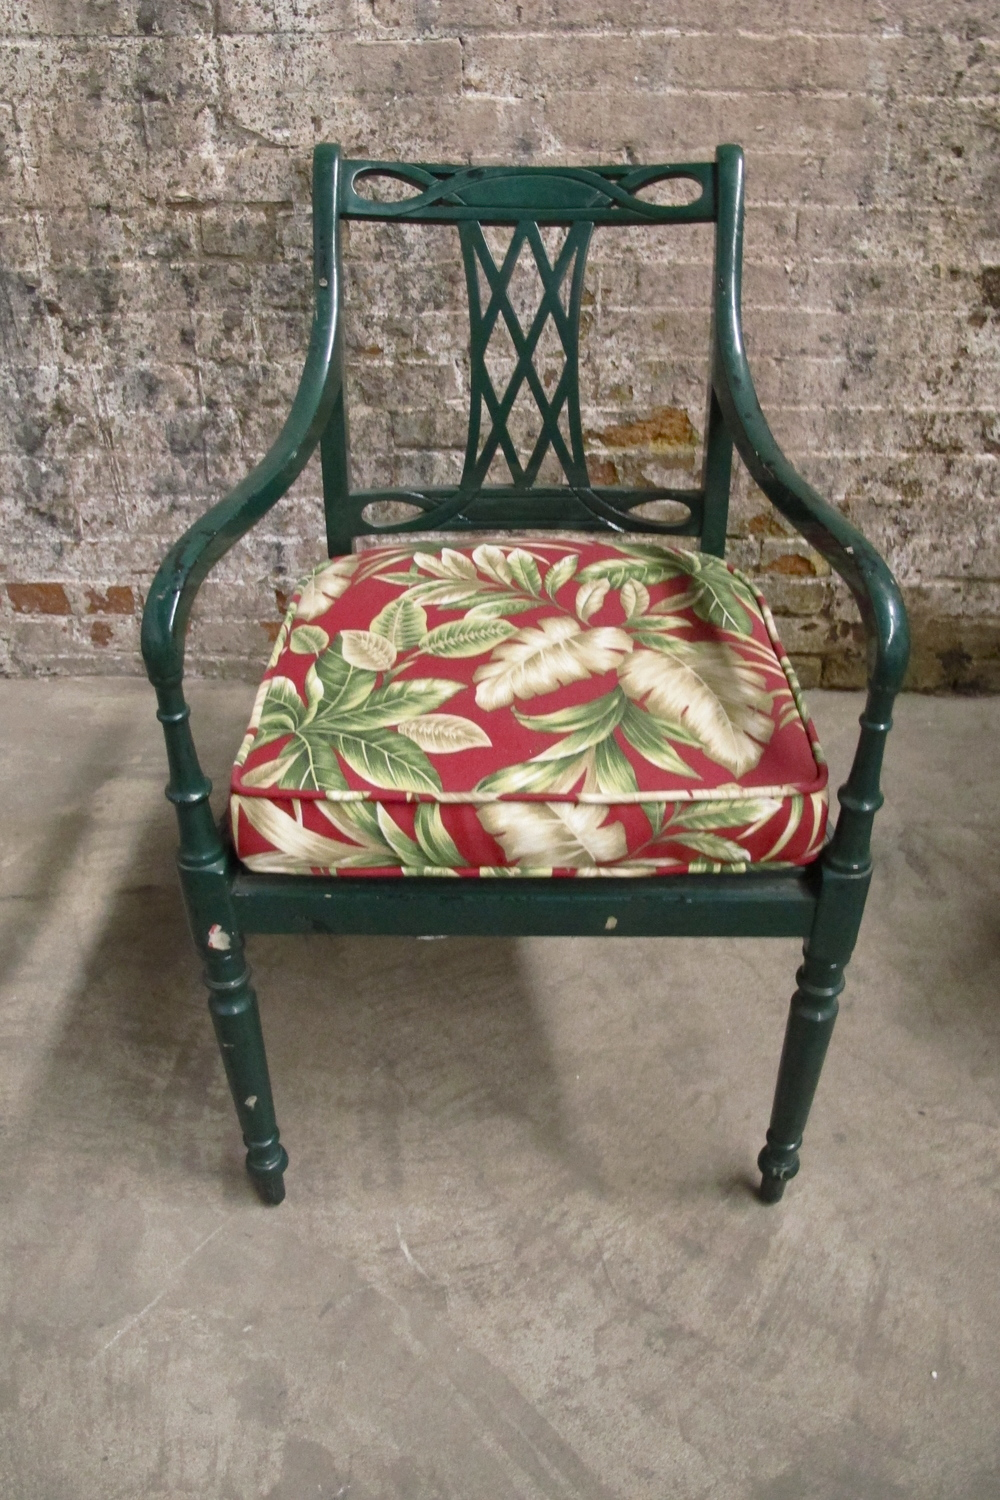 Green Cabana Chair $75